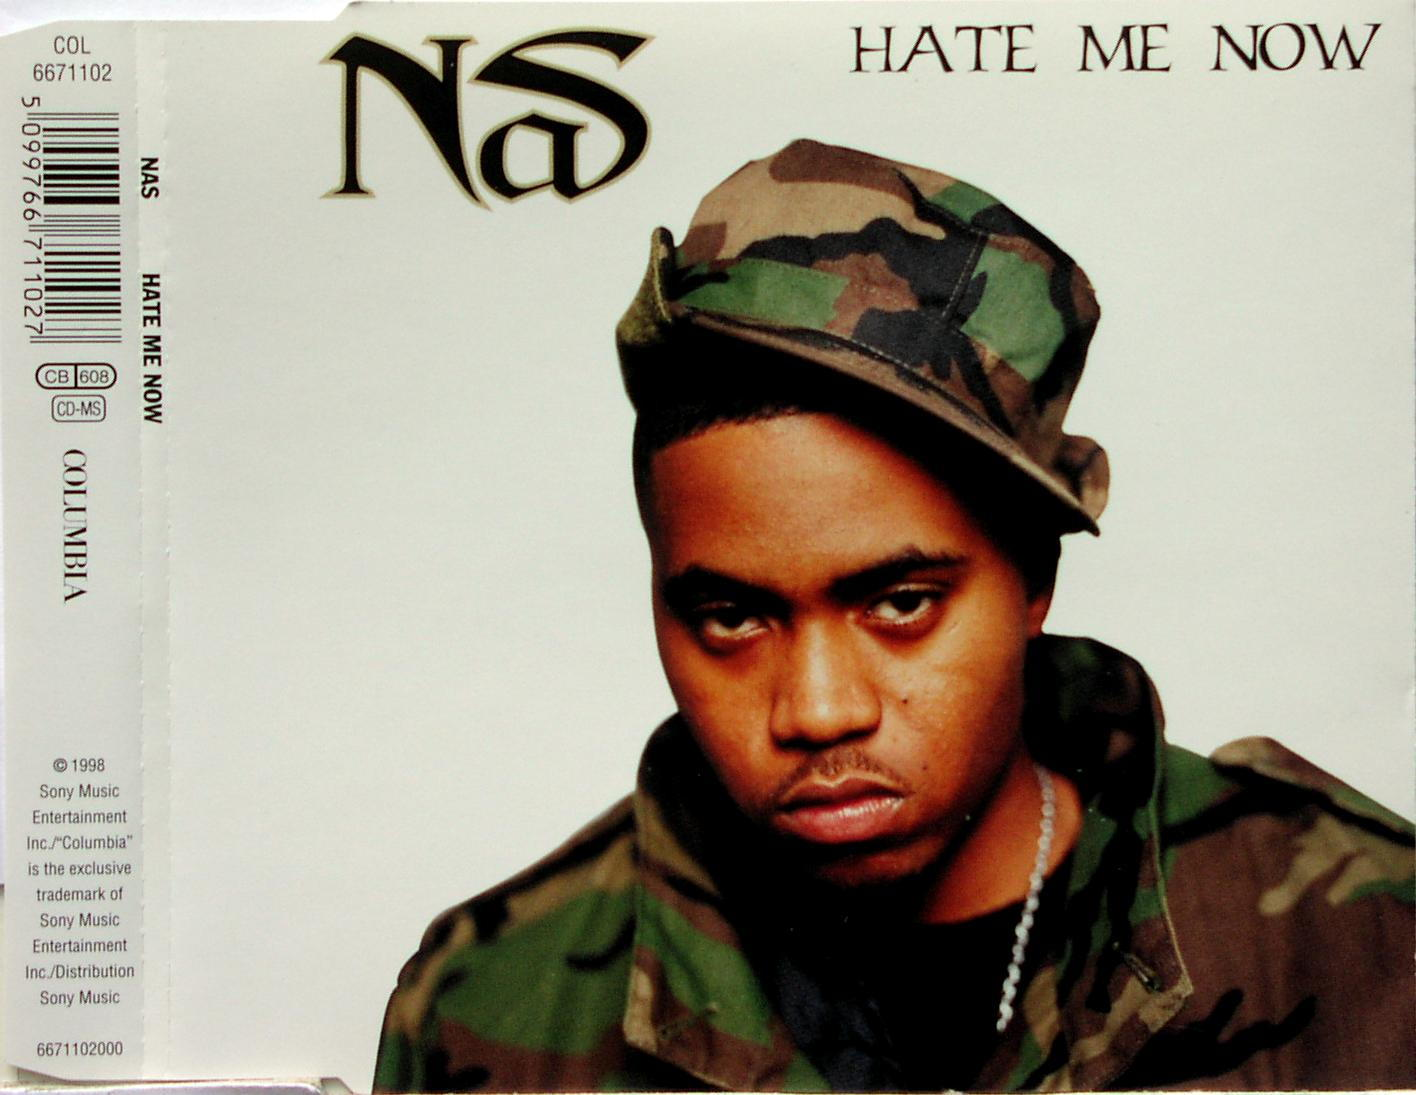 NAS FEAT. PUFF DADDY - Hate Me Know - CD Maxi